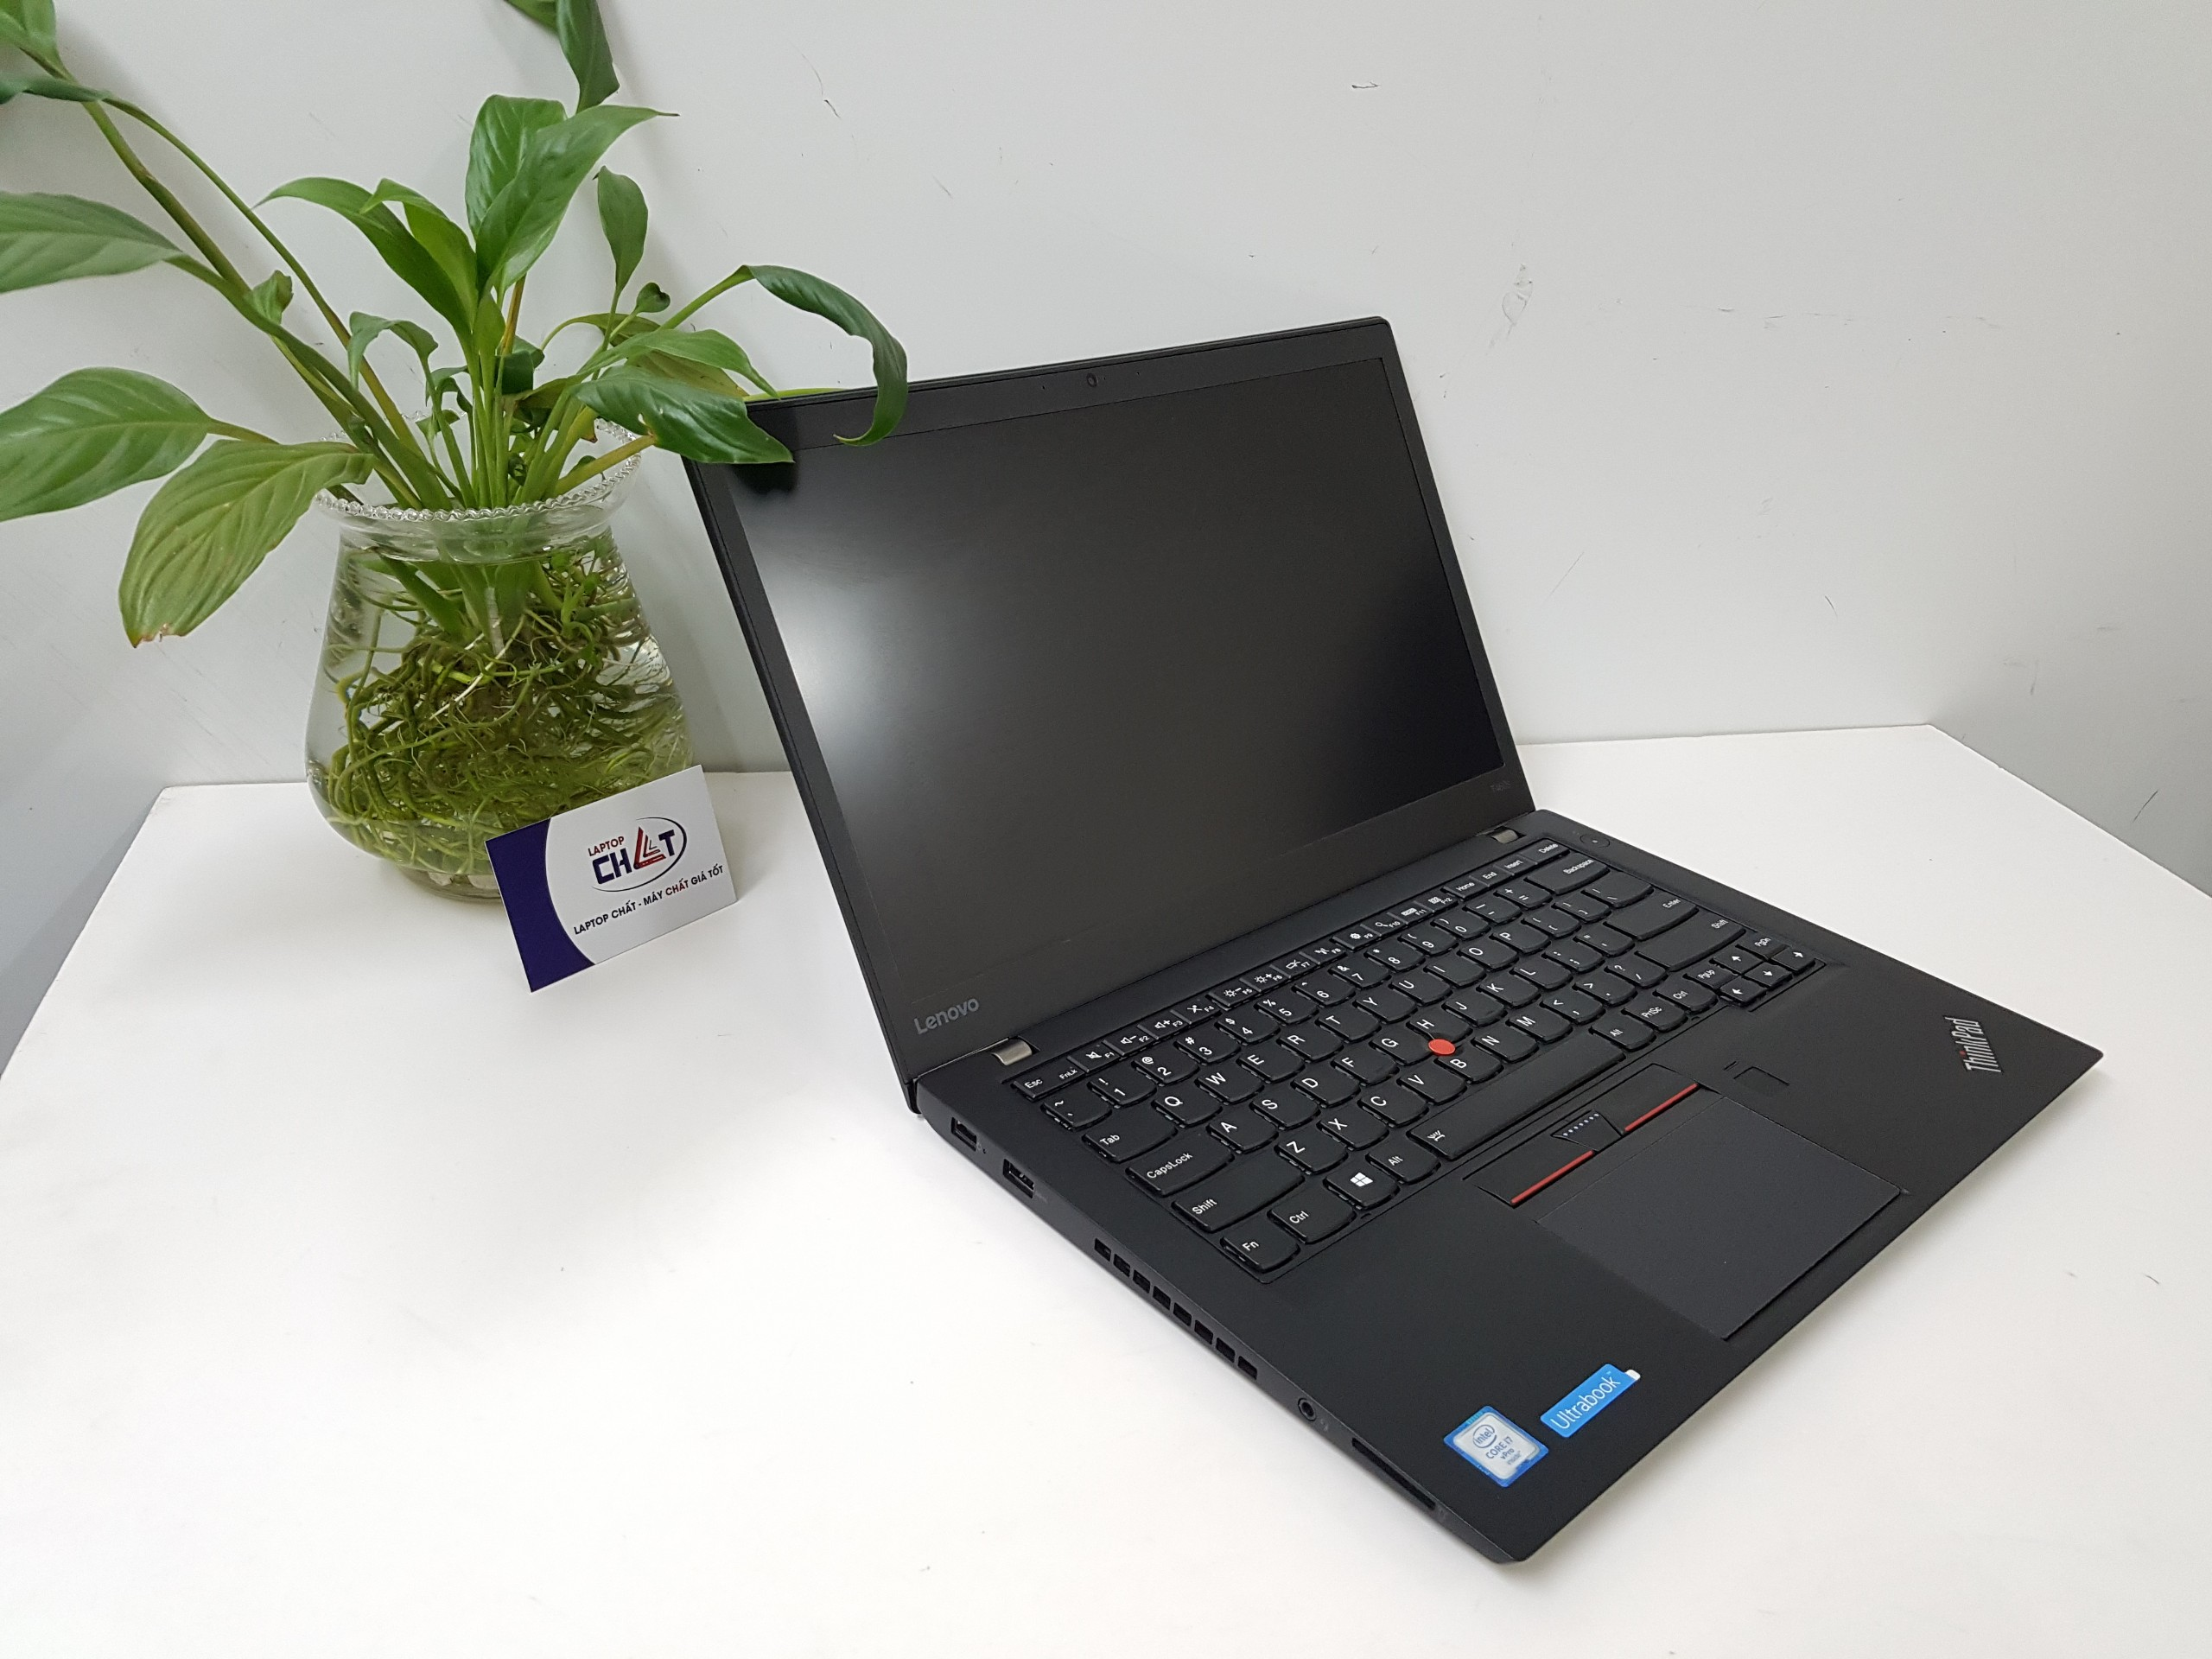 Thinkpad T460s Core i7-2